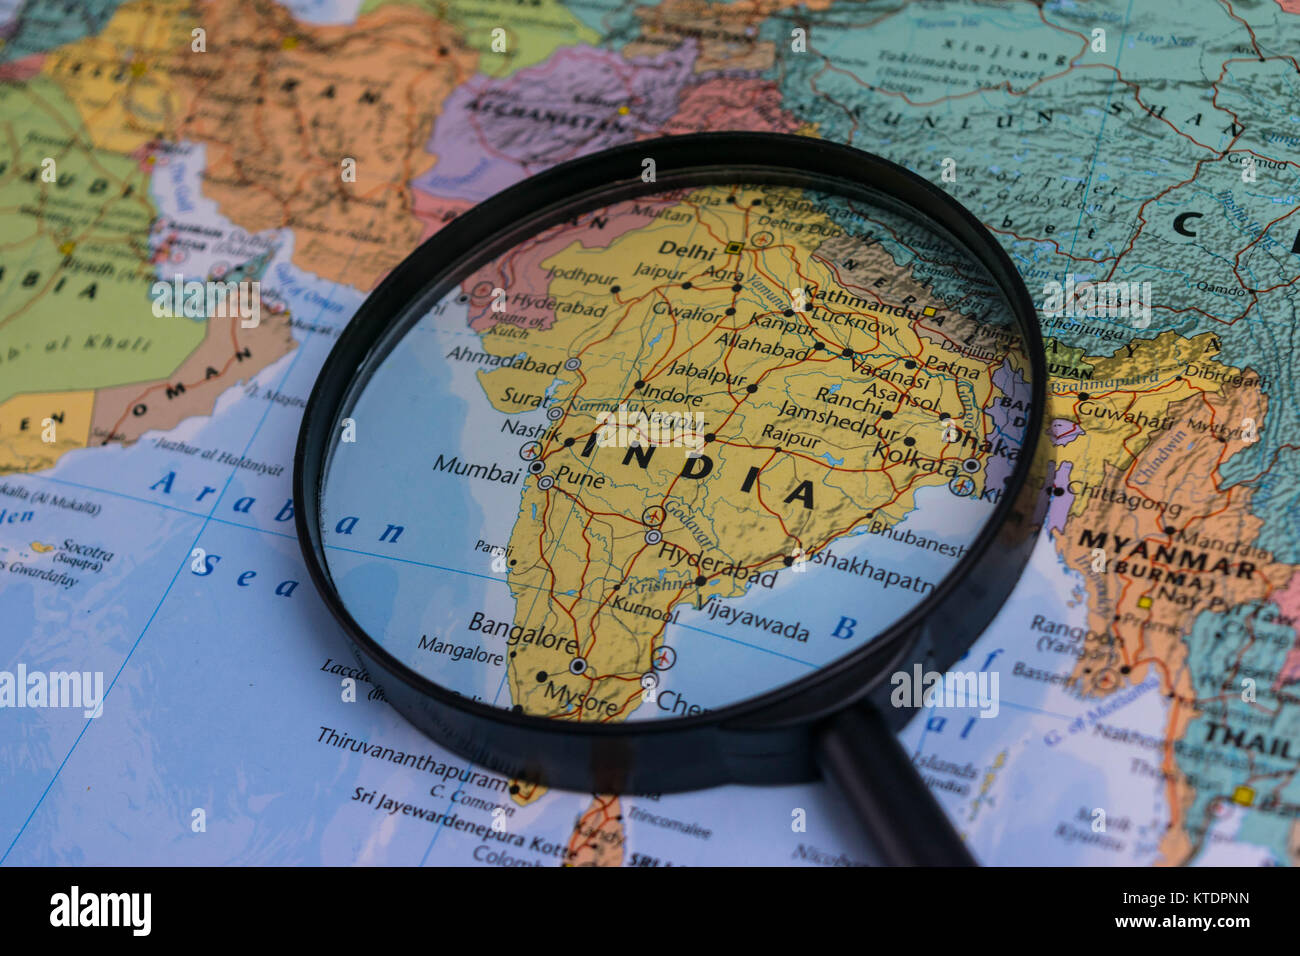 India map through magnifying glass on a world map stock photo india map through magnifying glass on a world map gumiabroncs Choice Image